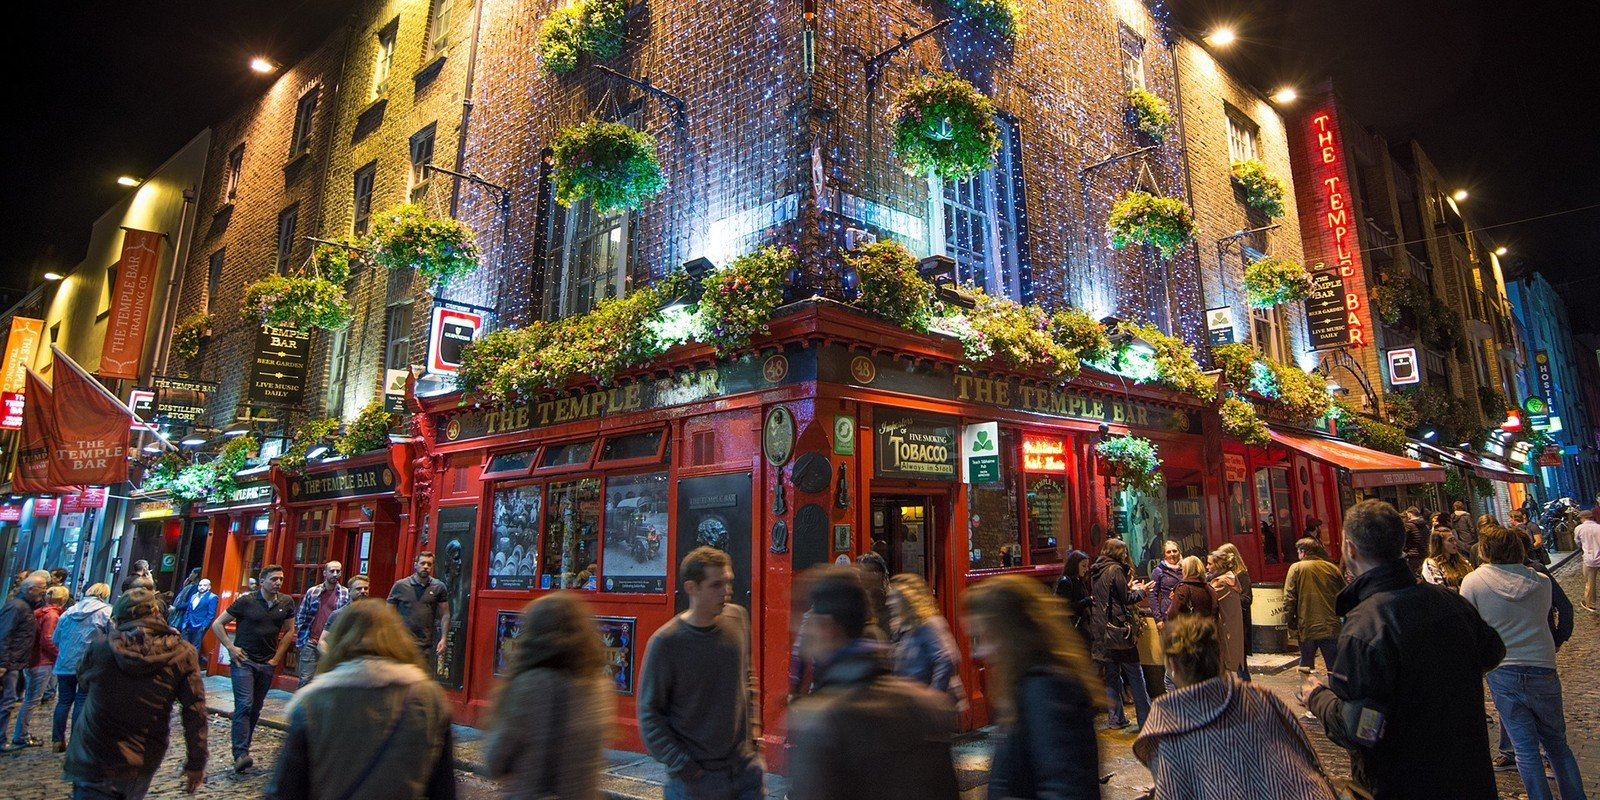 best pubs in dublin the temple bar dublin